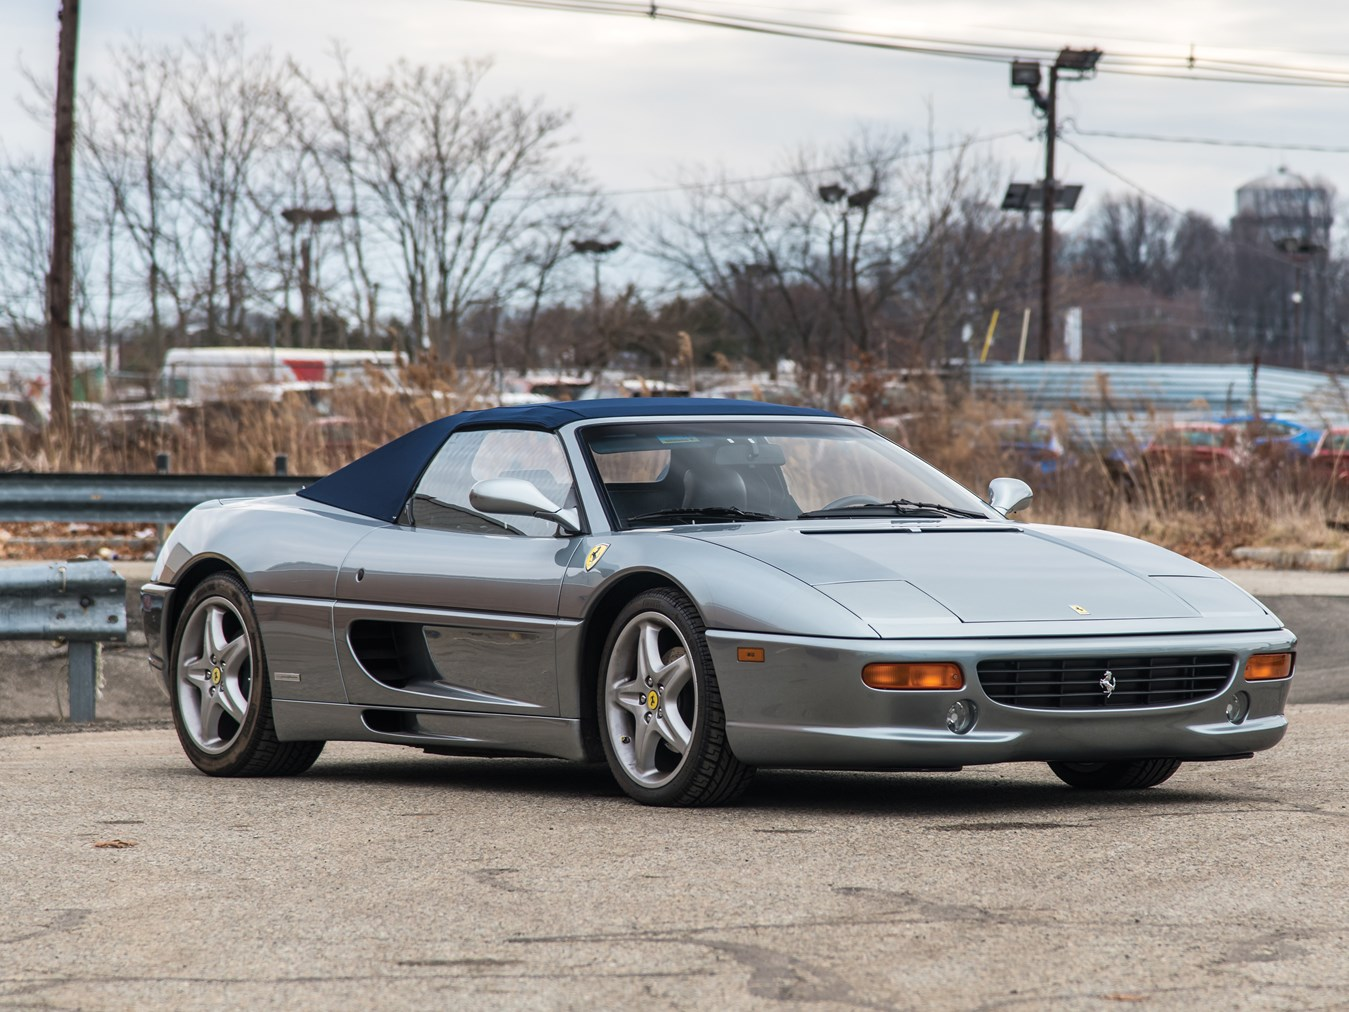 RM Sotheby's - 1999 Ferrari 355 F1 Spider 'Serie Fiorano' | Fort ...